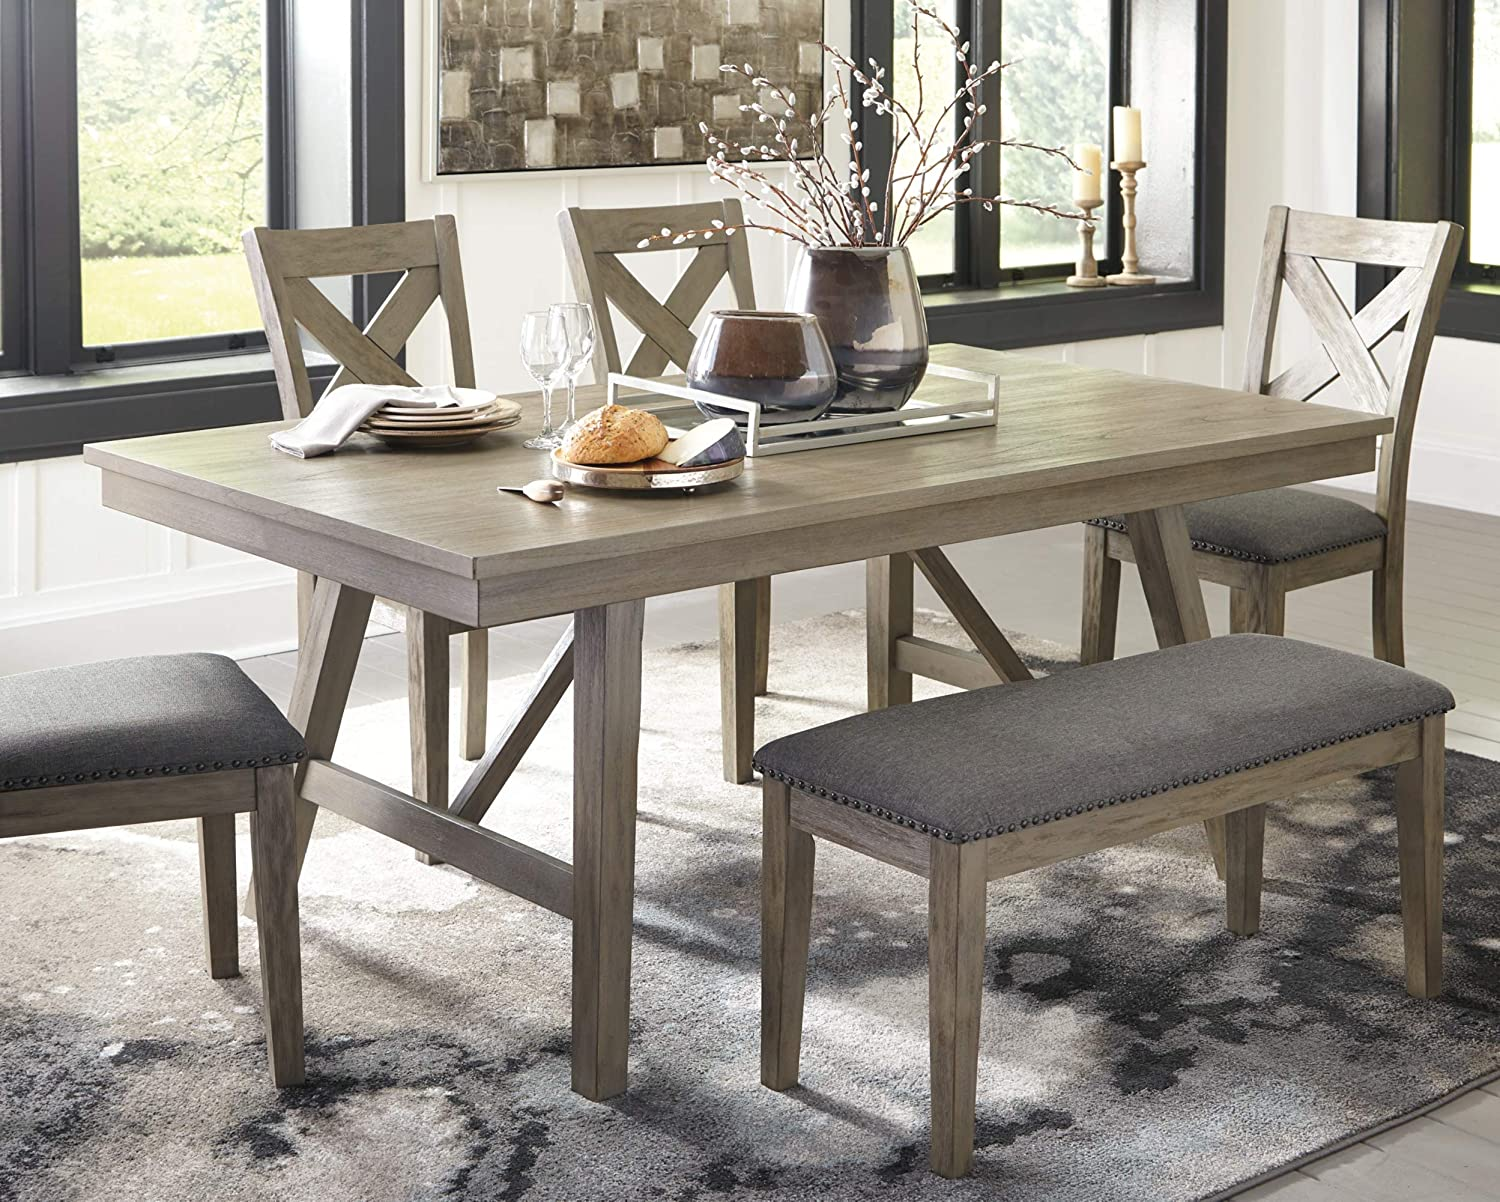 Signature Design by Ashley Dining Room Bench Upholstered Seat Aldwin Rustic Brown//Grey